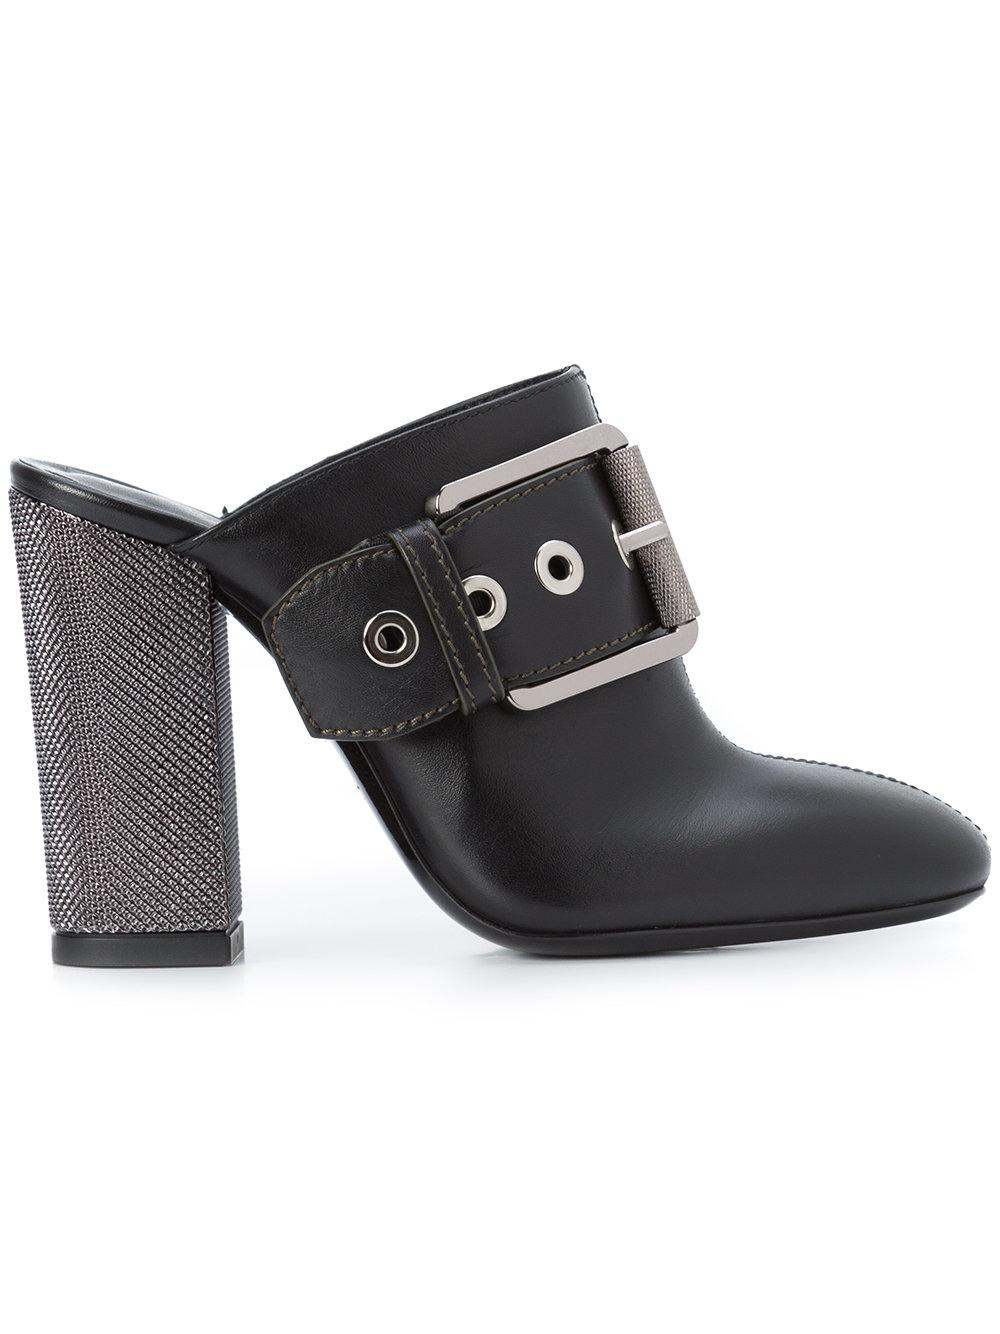 Barbara Bui Buckle Front Boot Style Mules - Black